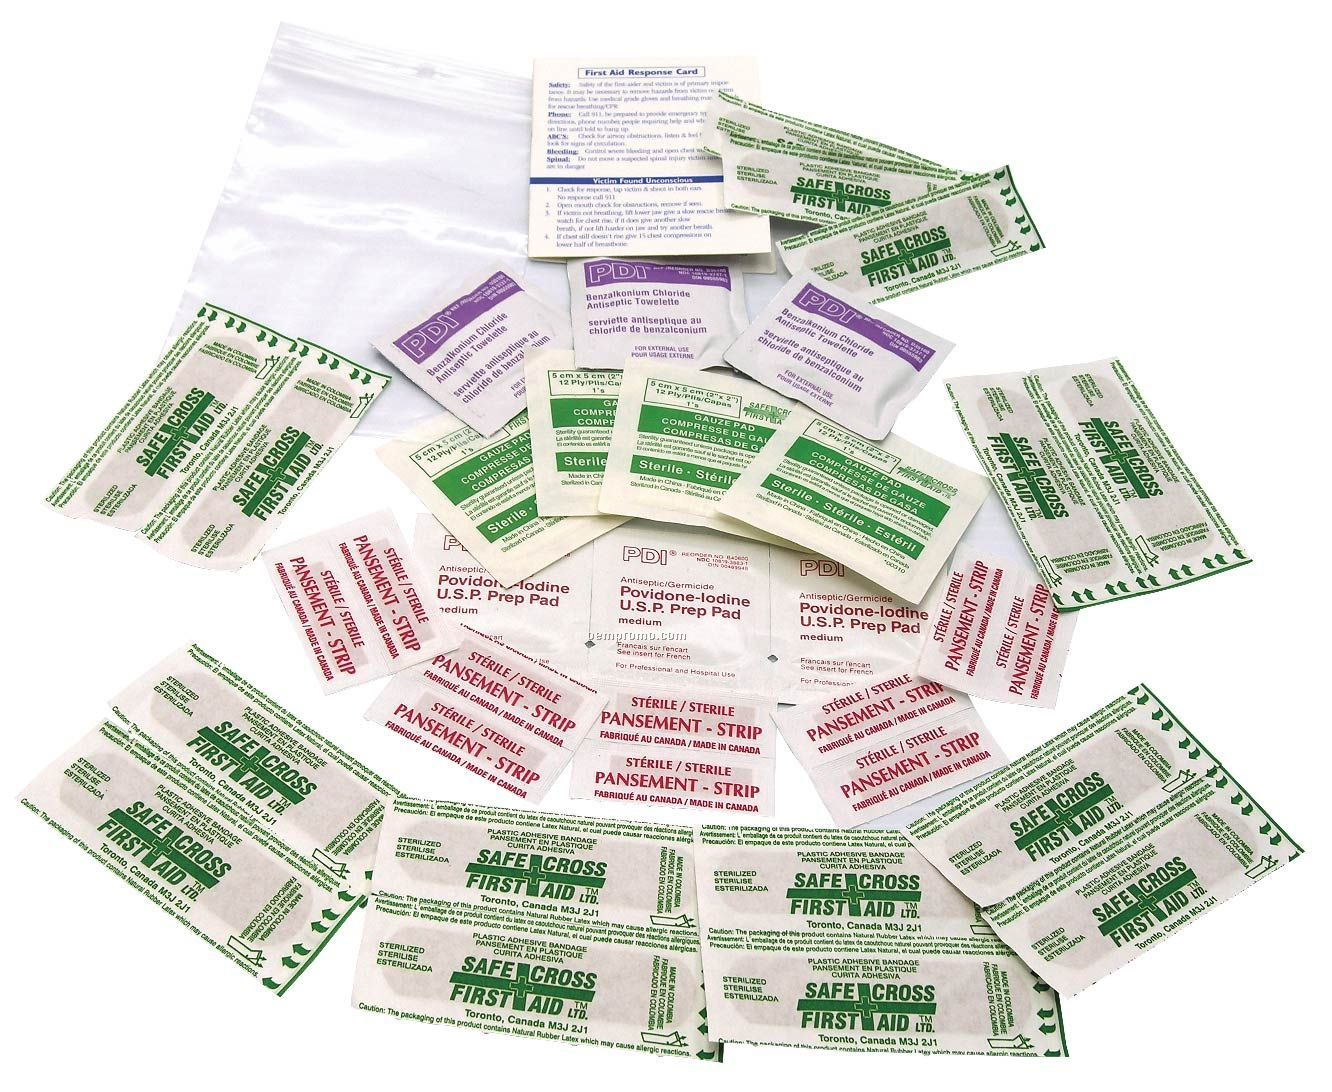 36 Piece First Aid Kit (Blank)